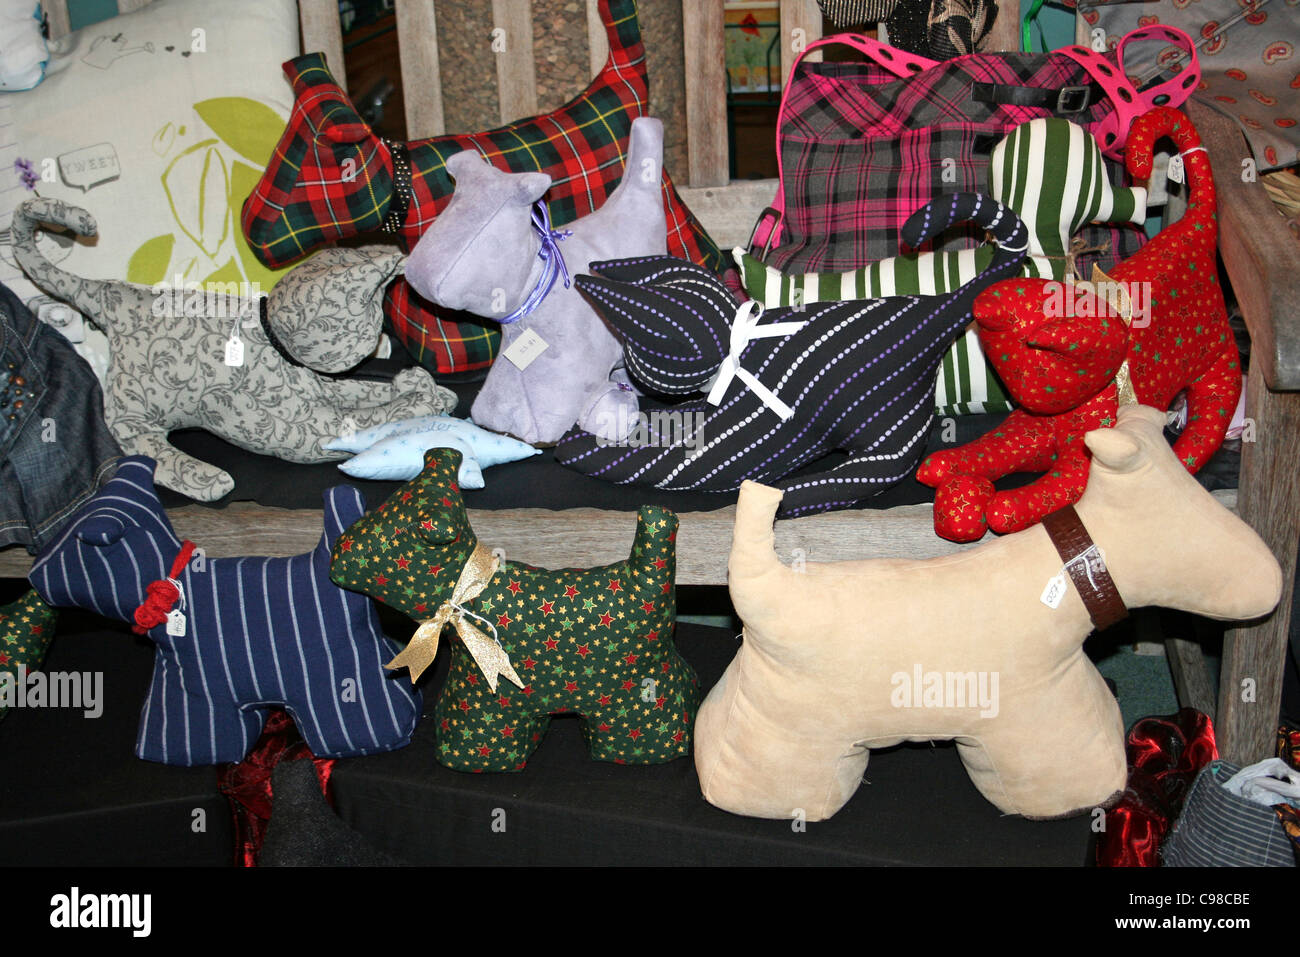 Arts And Craft Stall With Stuffed Toy Highland Terriers - Stock Image